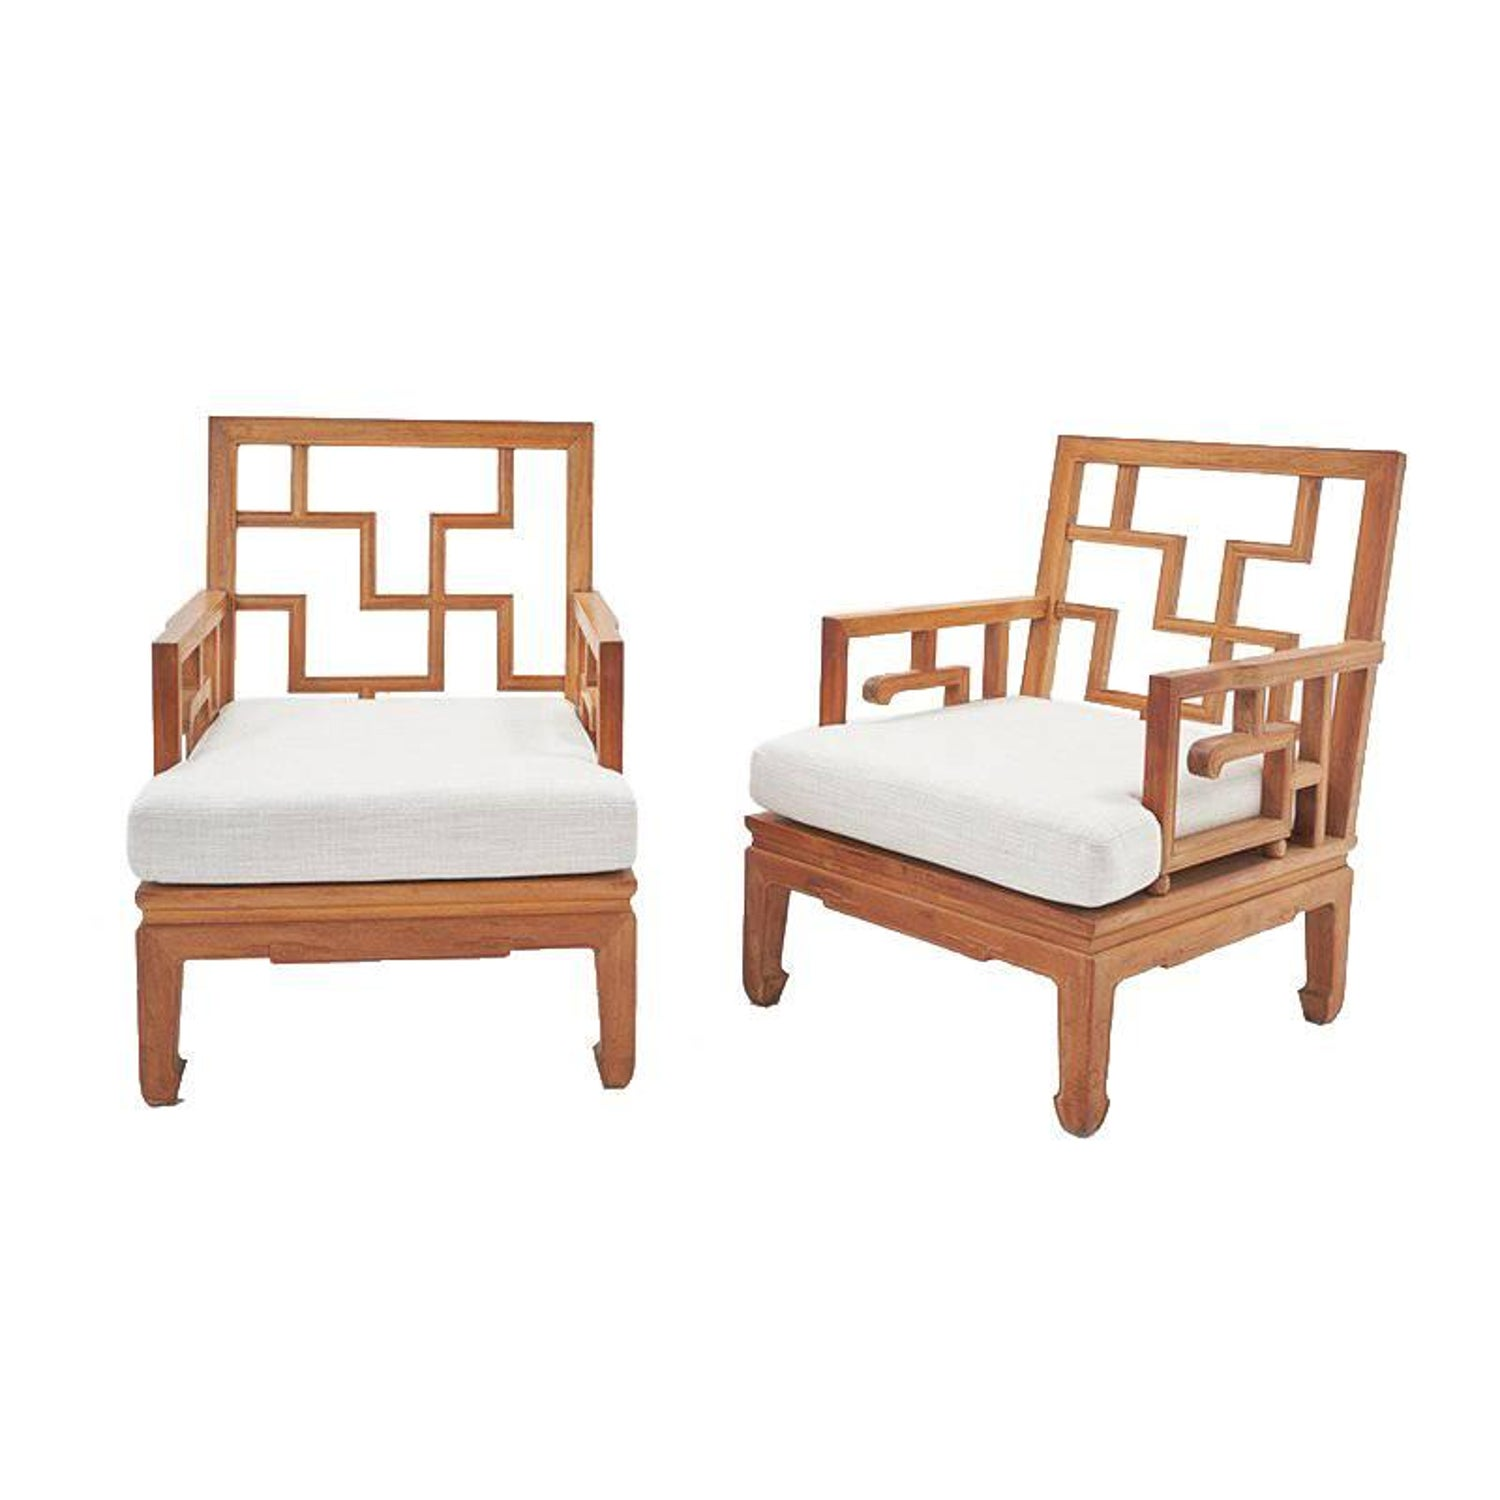 Chinese Chippendale Furniture For Sale At Stdibs - Chinese chippendale bedroom furniture